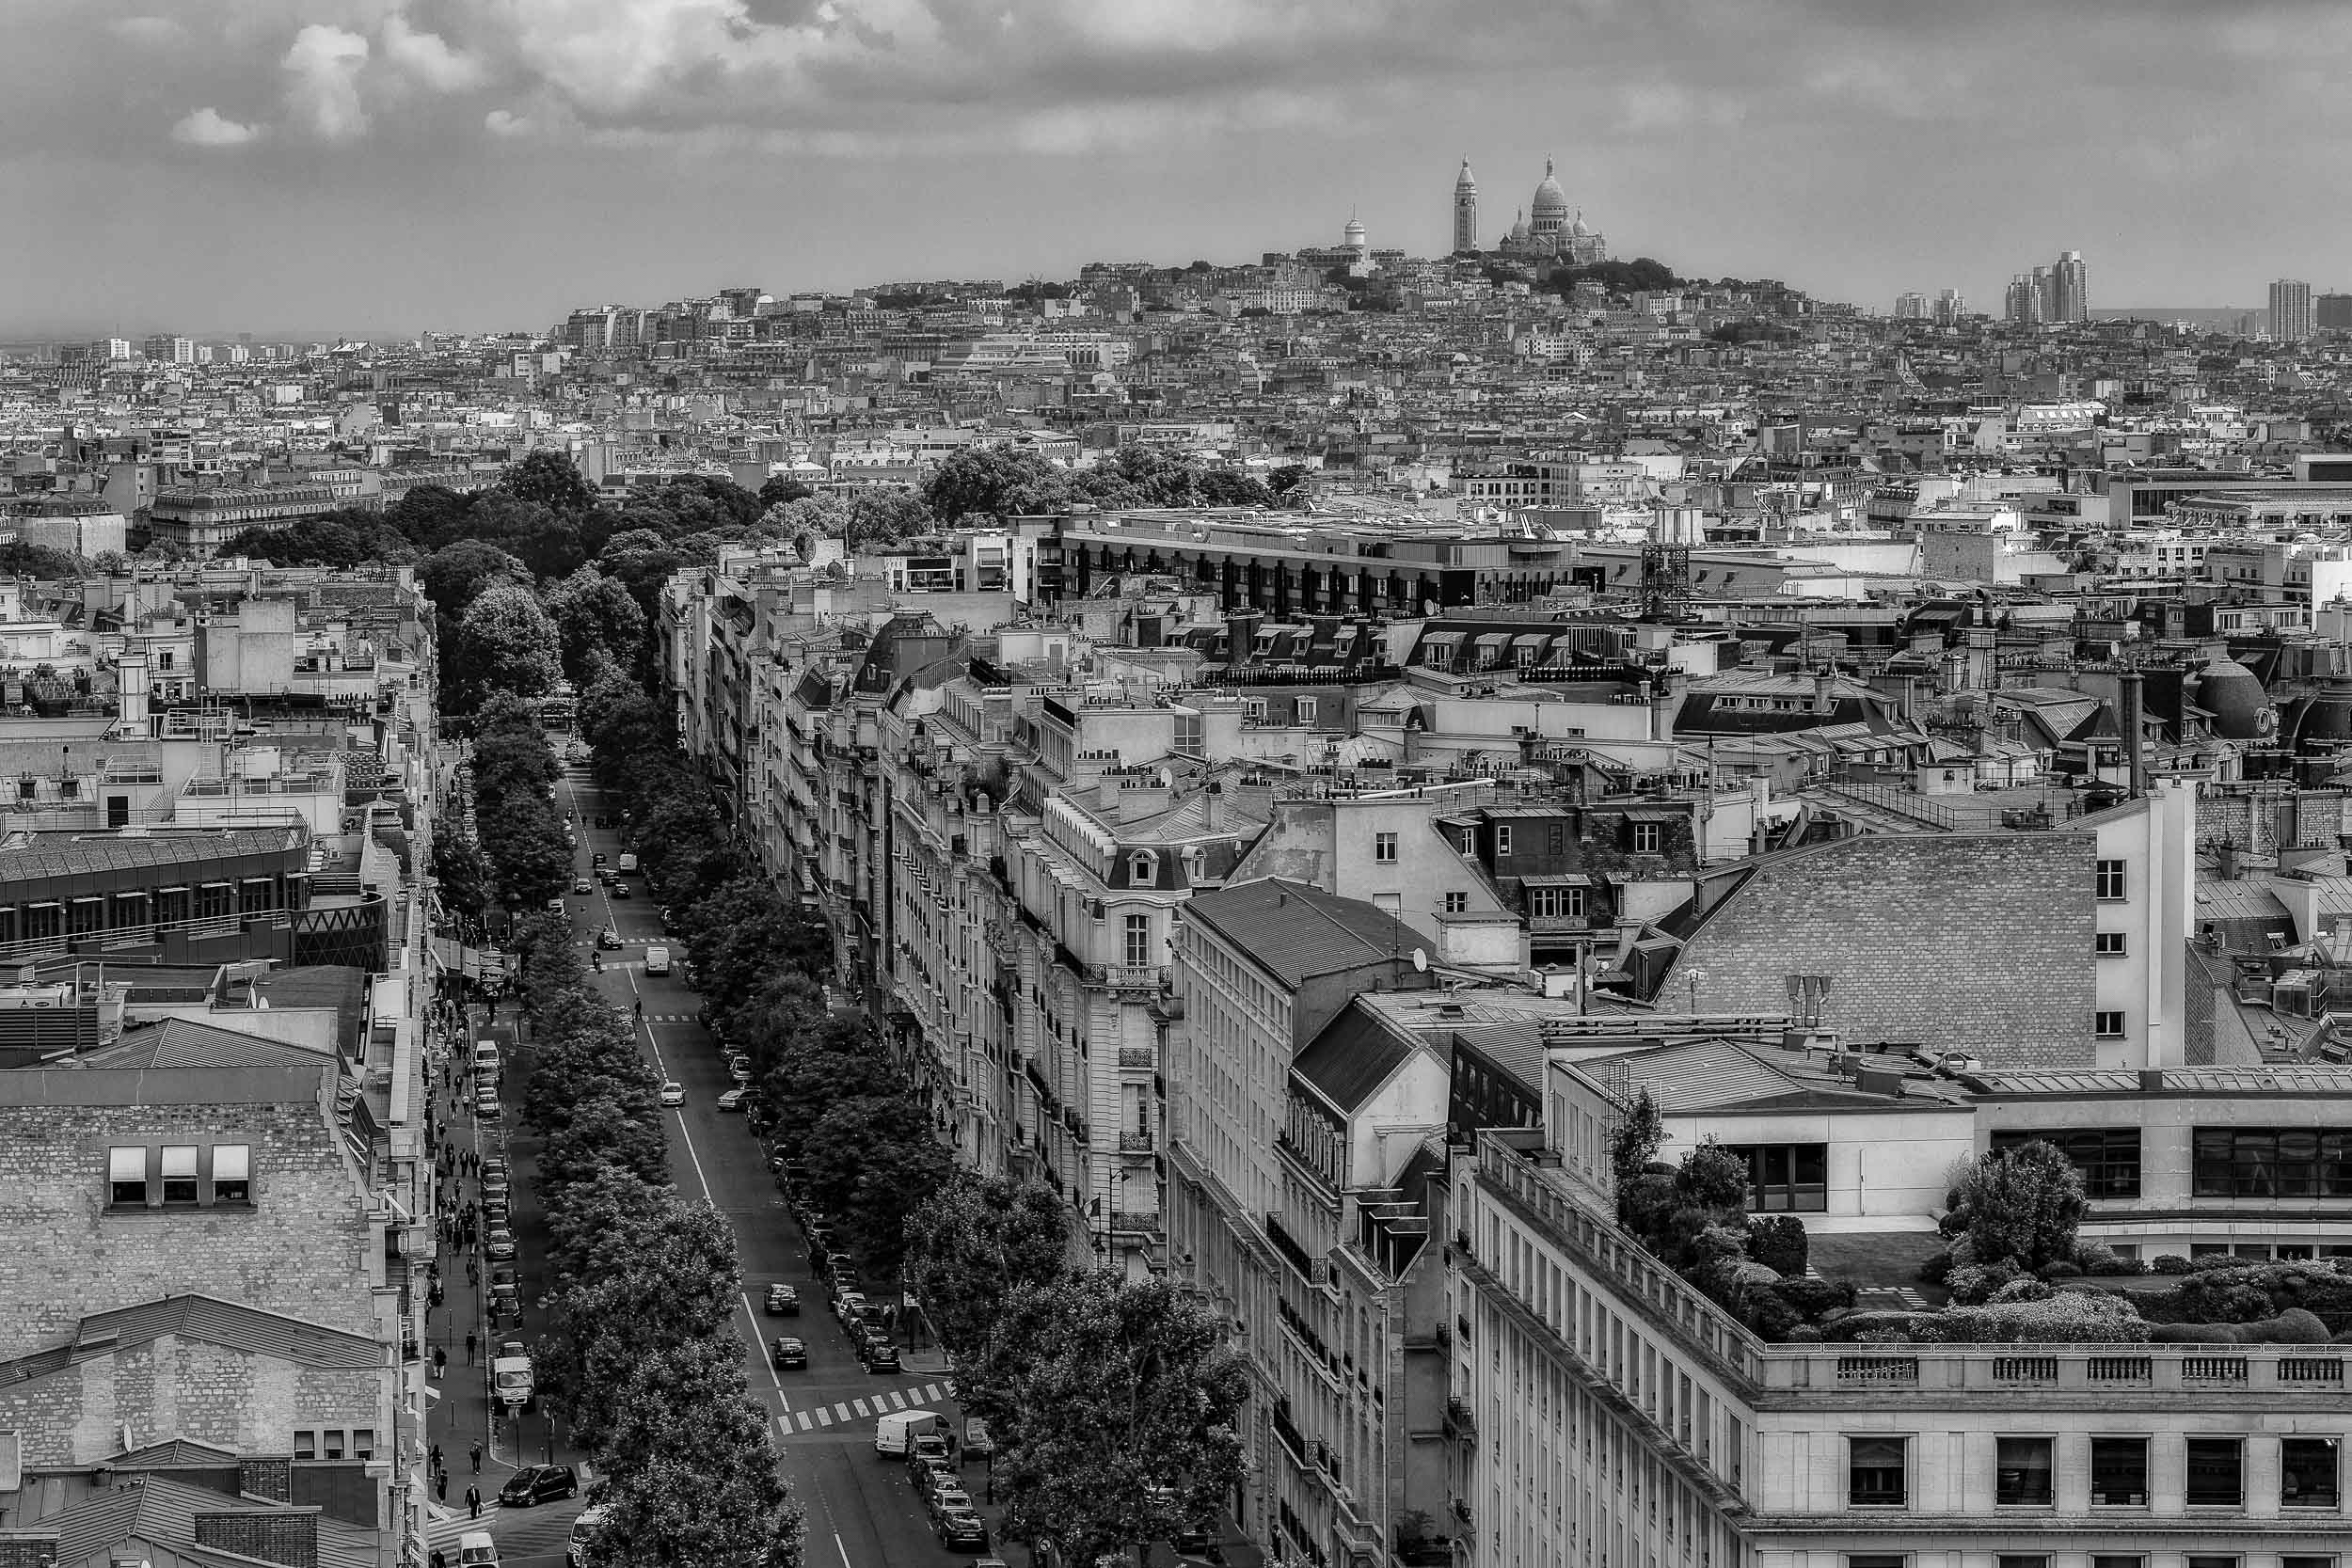 A rooftop view towards the    Sacre Coeur Basilica    on    Montmarte    in    Paris    from atop the    Arc de Triomphe   .